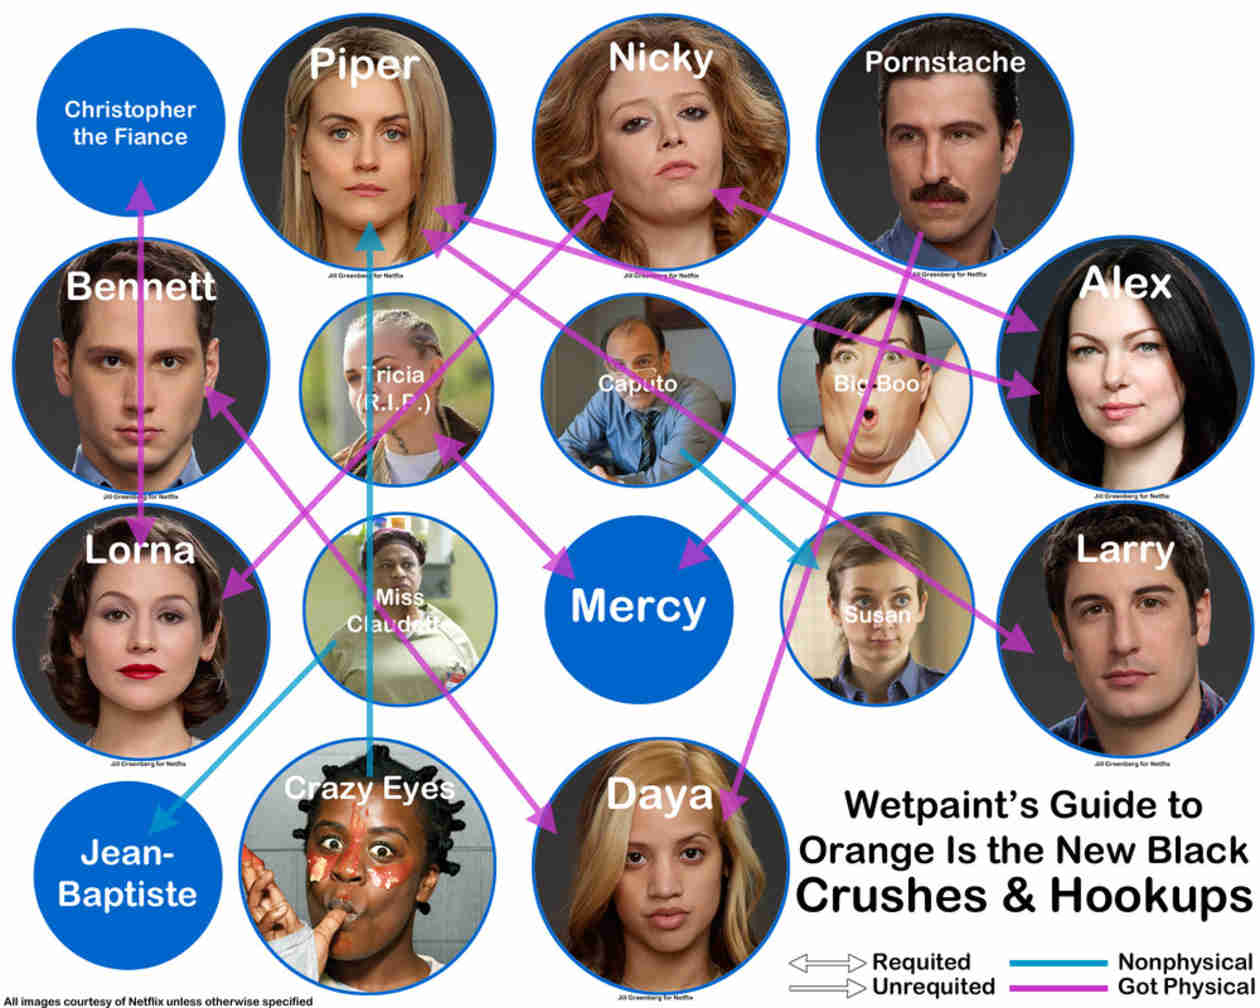 Orange Is the New Black: Who Hooked Up With Who? A Guide to Relationships and Crushes (INFOGRAPHIC)